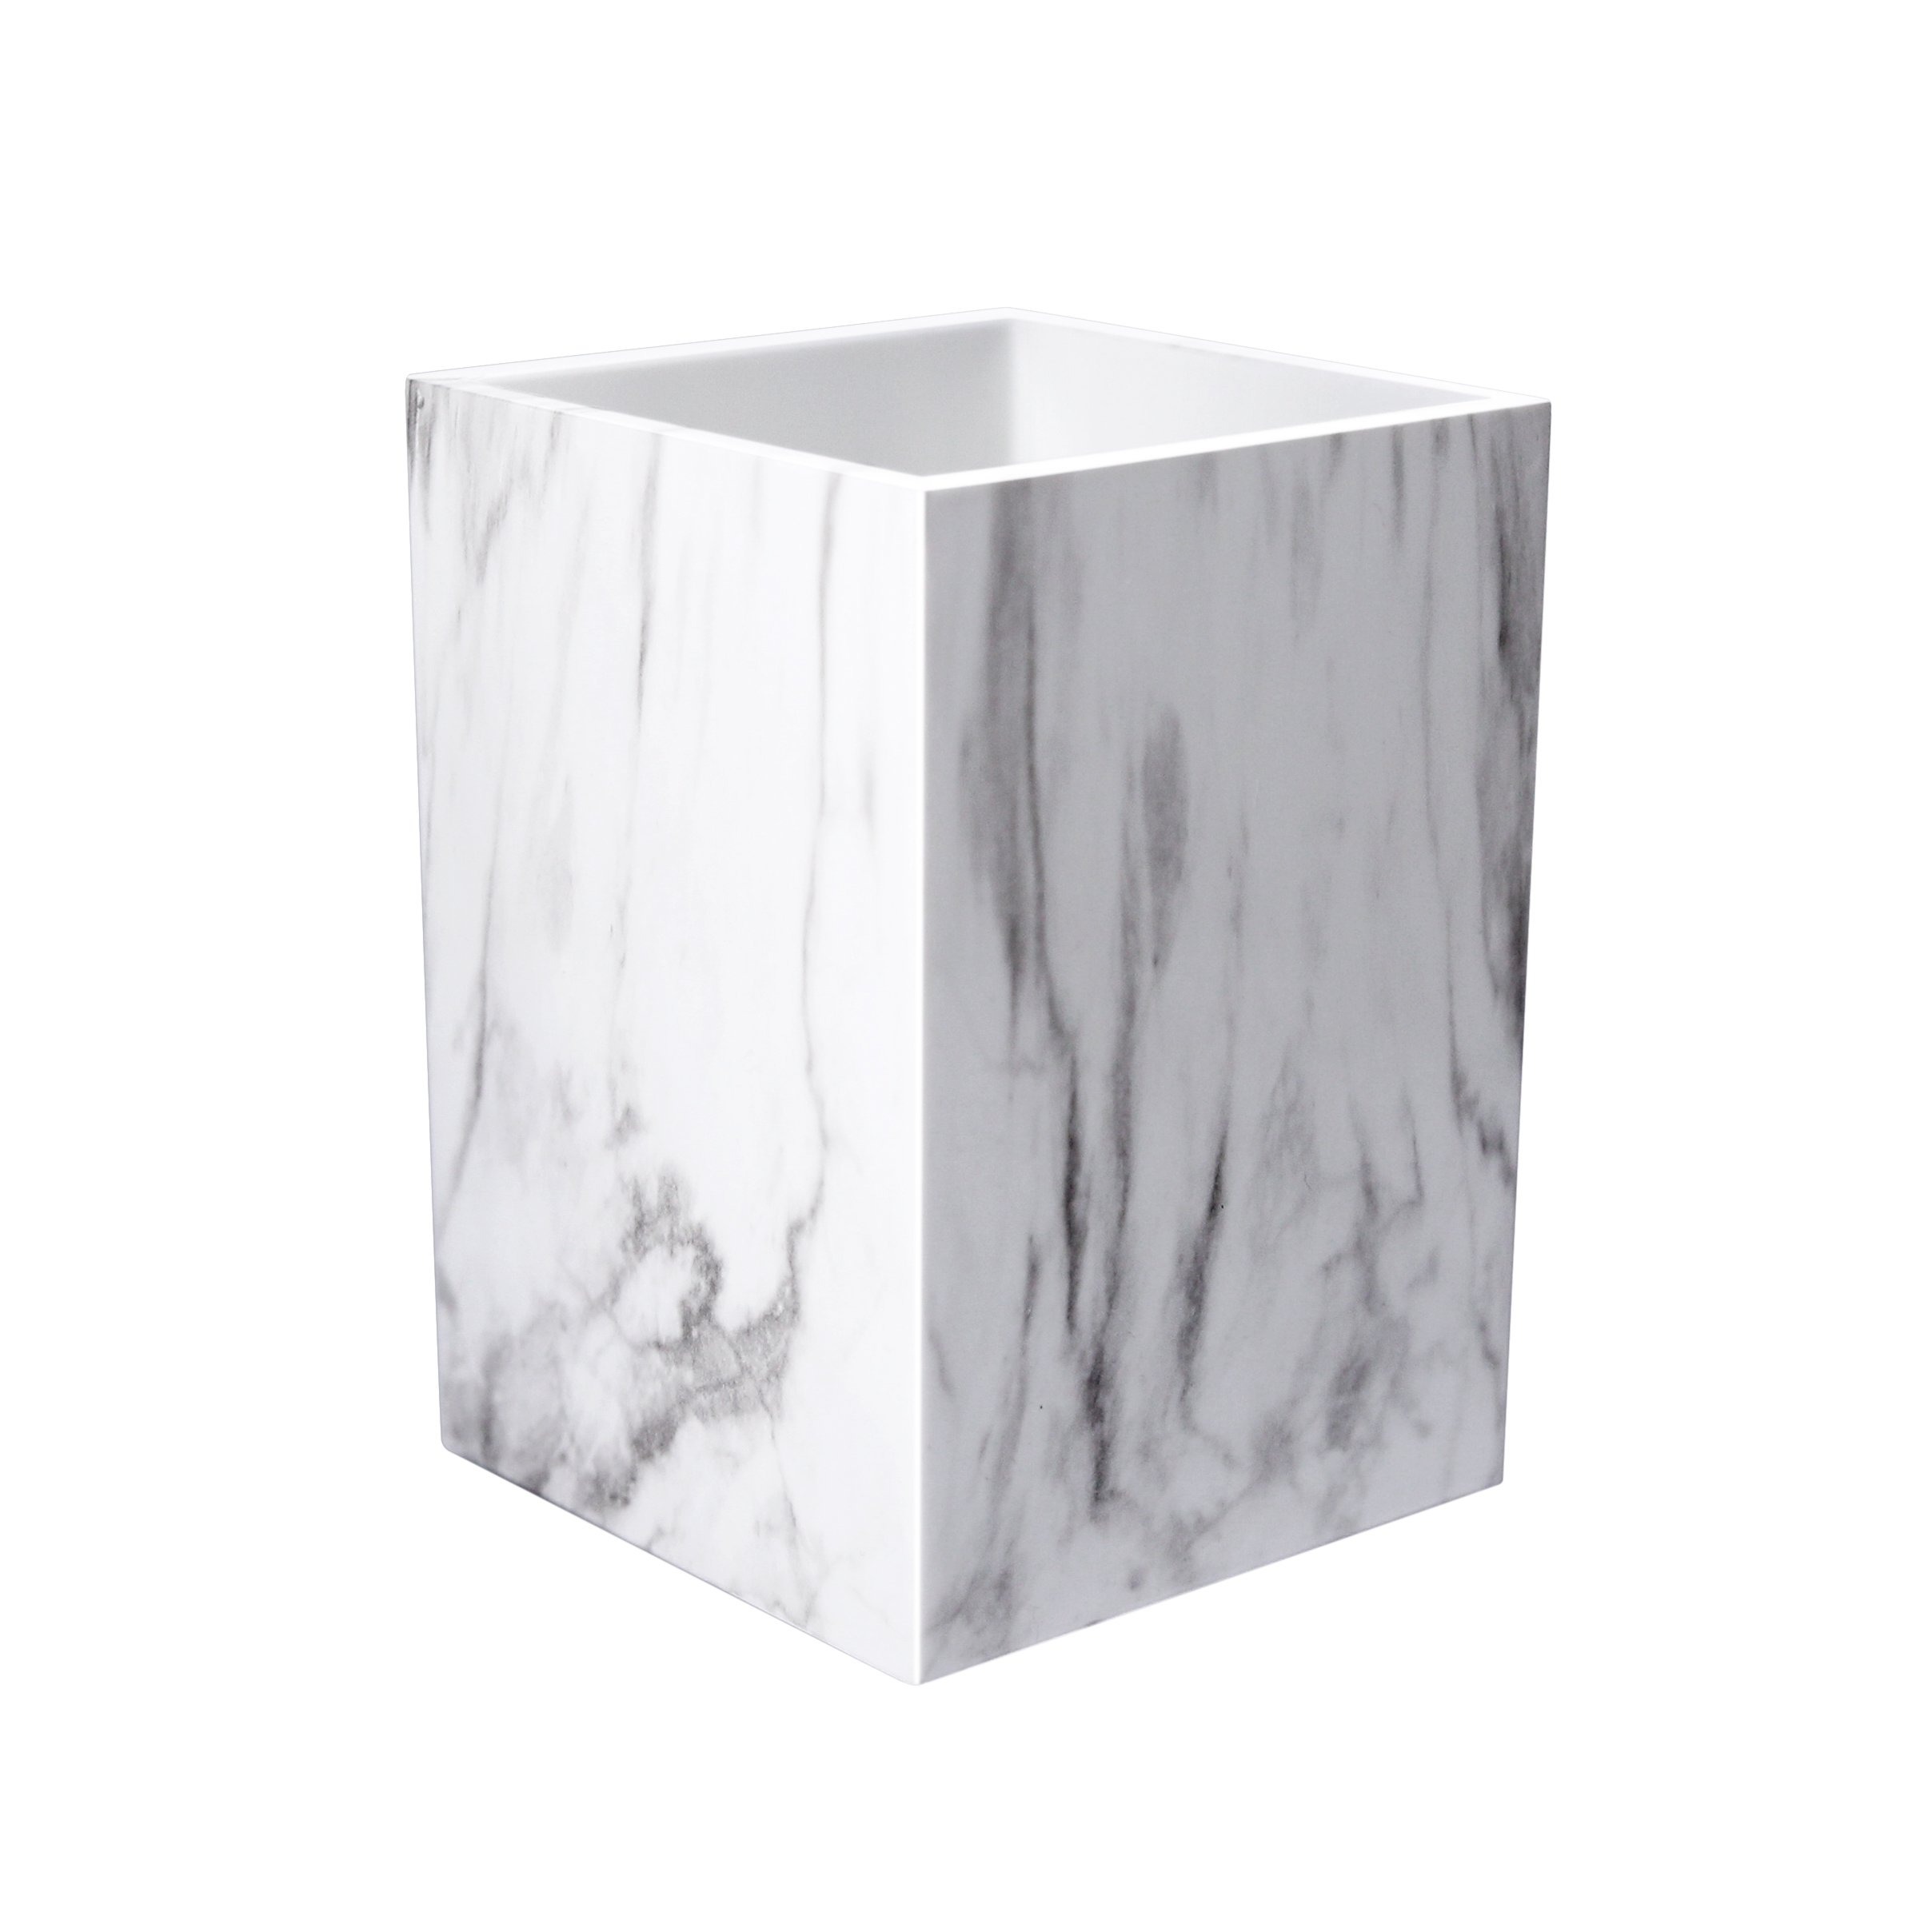 UNIQOOO Marble Print Desk Pen and Pencil Holder Case Box with Fashionable Modern Design in Elegant Matt Finish- Beautiful Stationery for Daily Use in Office, Classroom, Home, Great Gift Idea